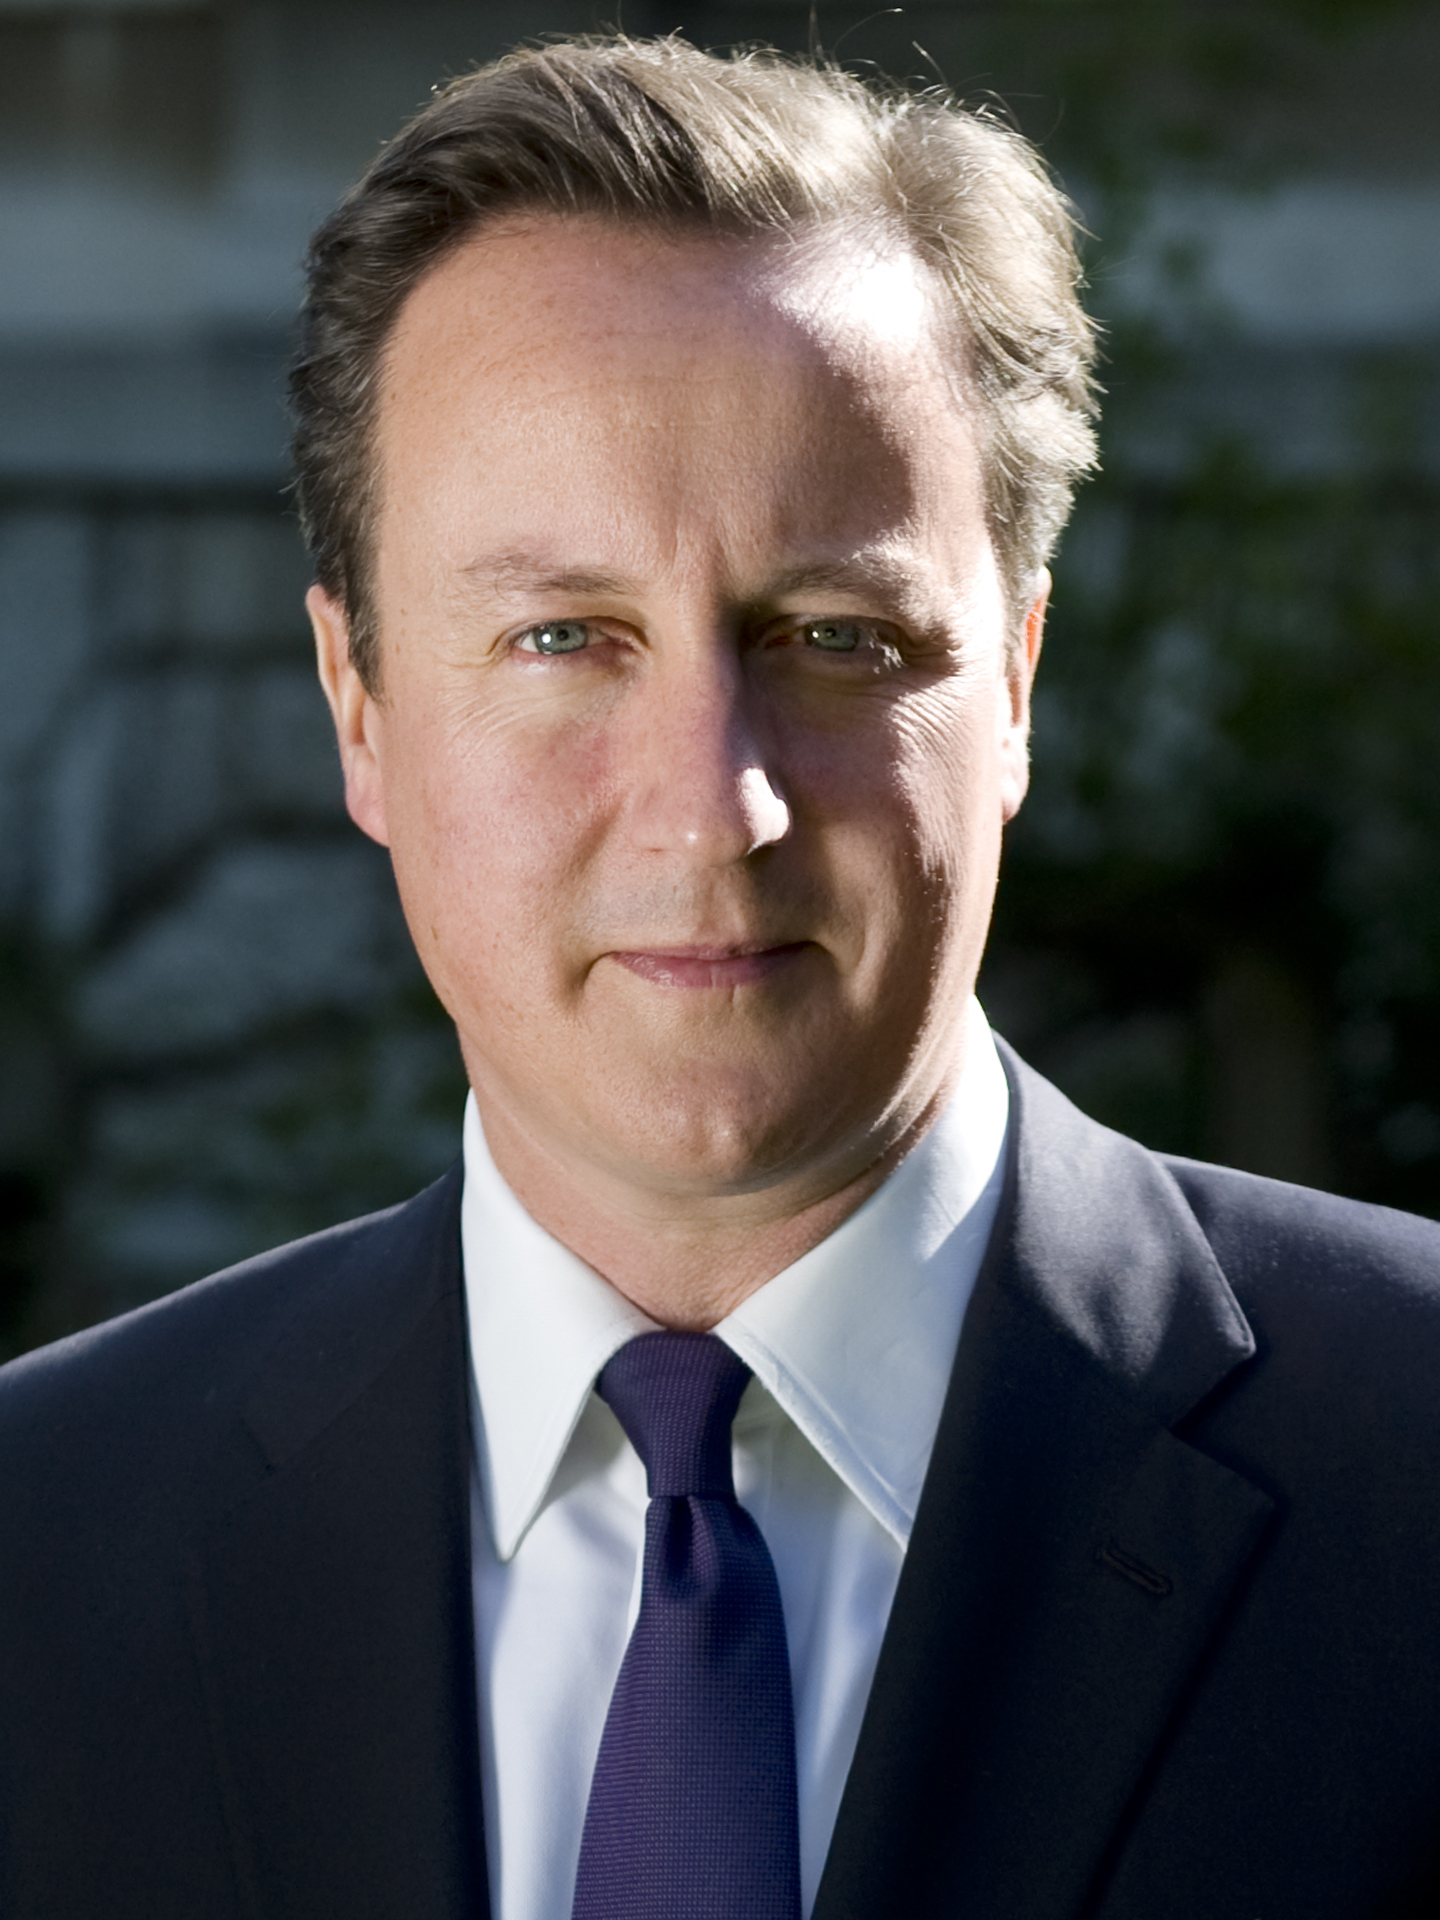 upload.wikimedia.org_wikipedia_commons_2_21_david_cameron_official.jpg